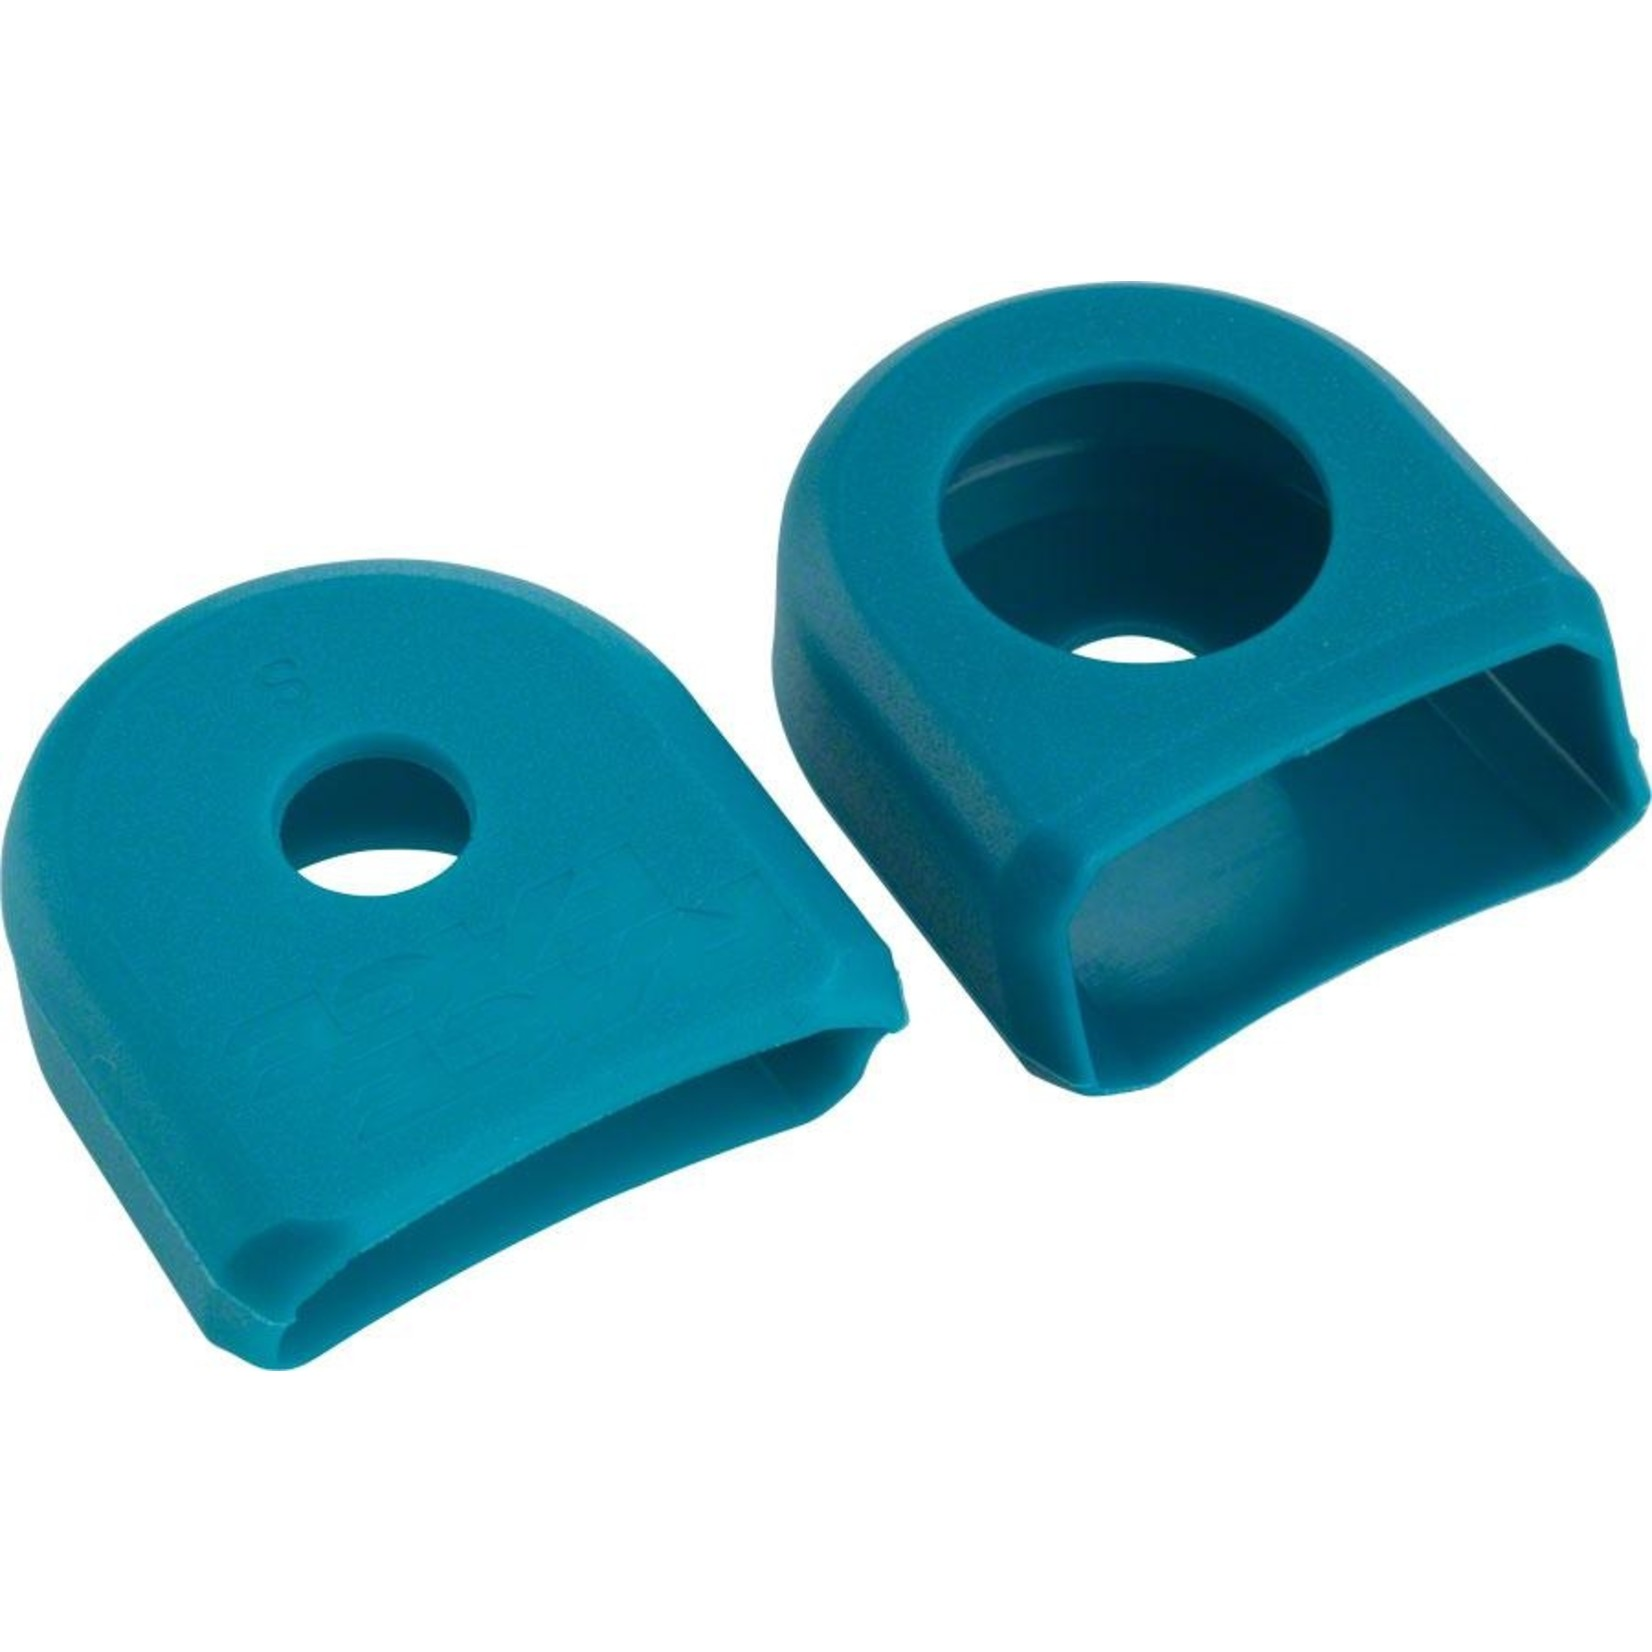 Race Face Crank Boot - Raceface - Small - Turquoise